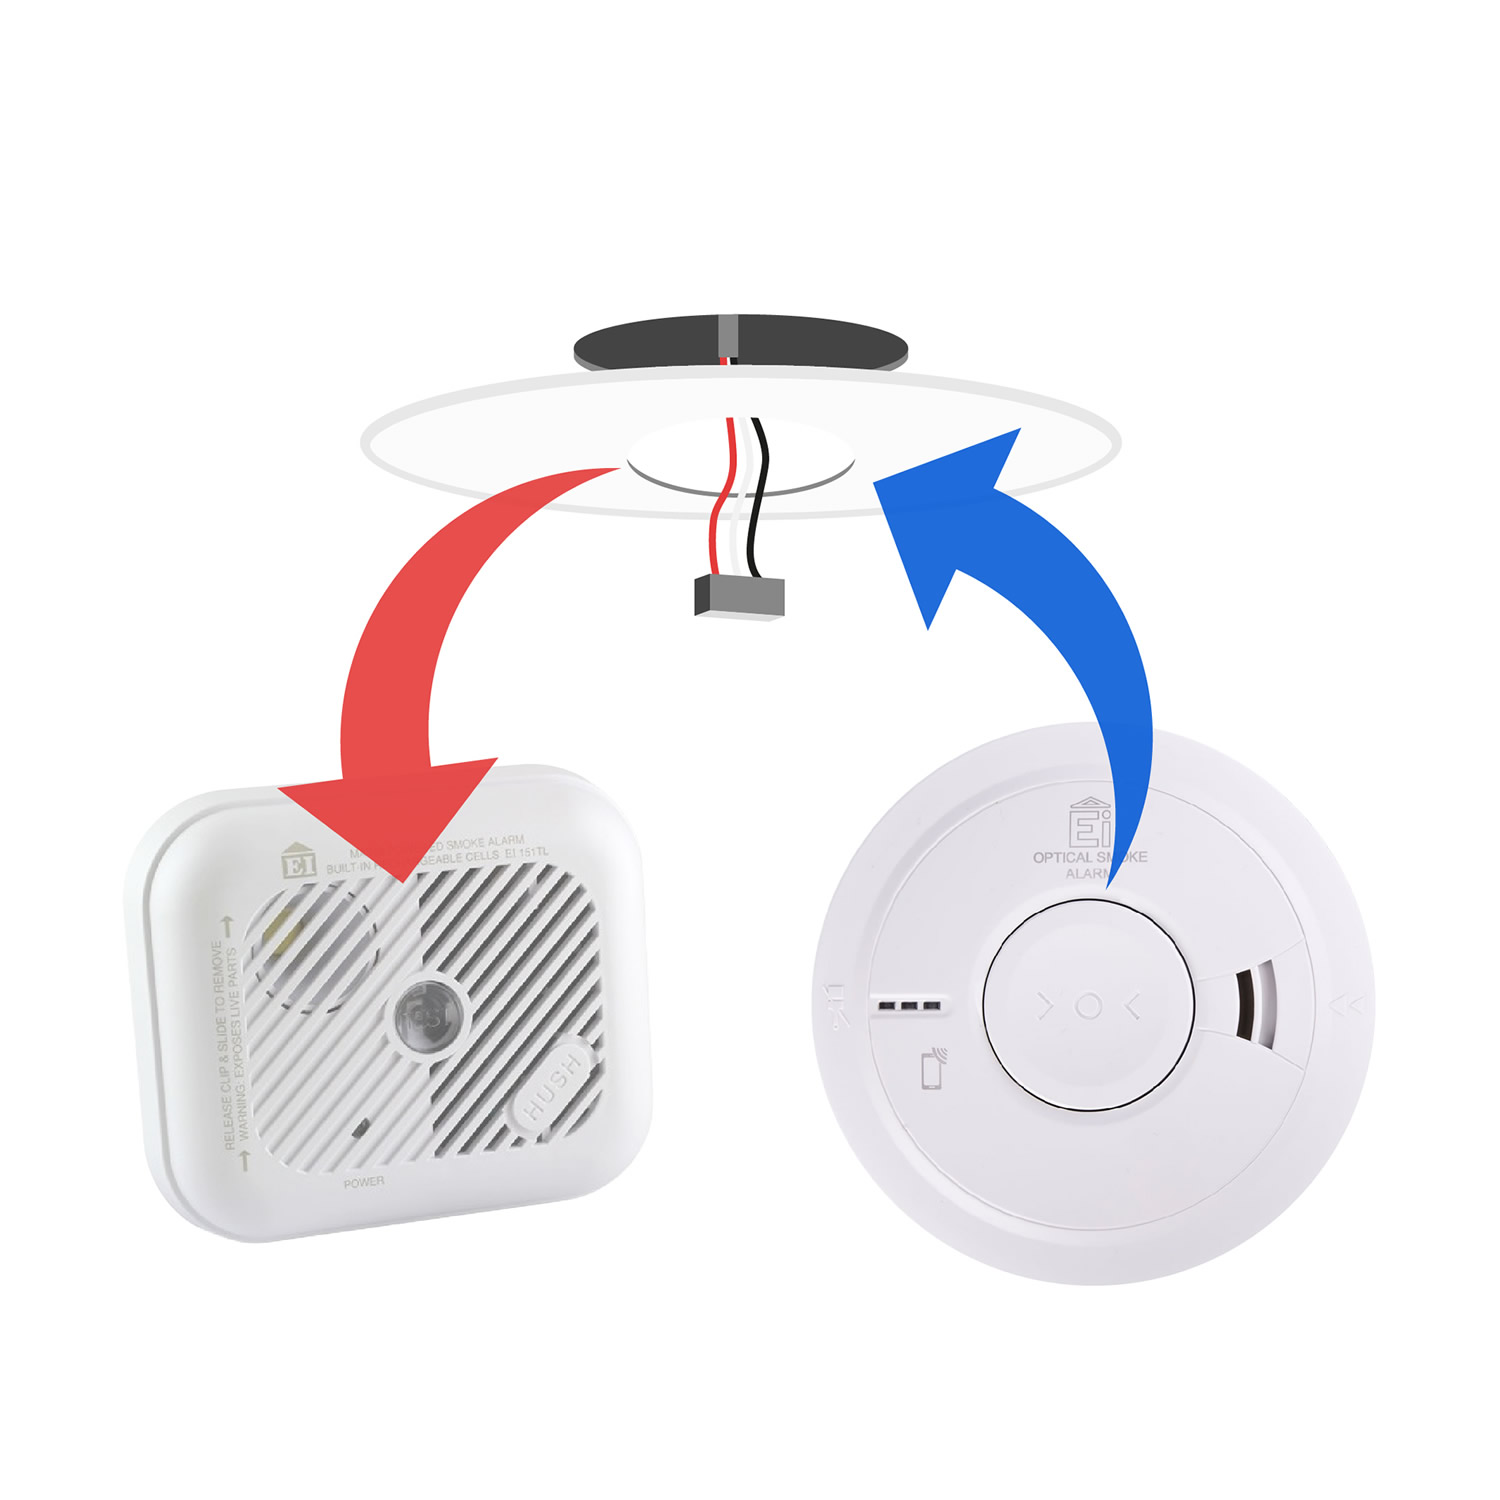 Replacement for Ei151 Smoke Alarm